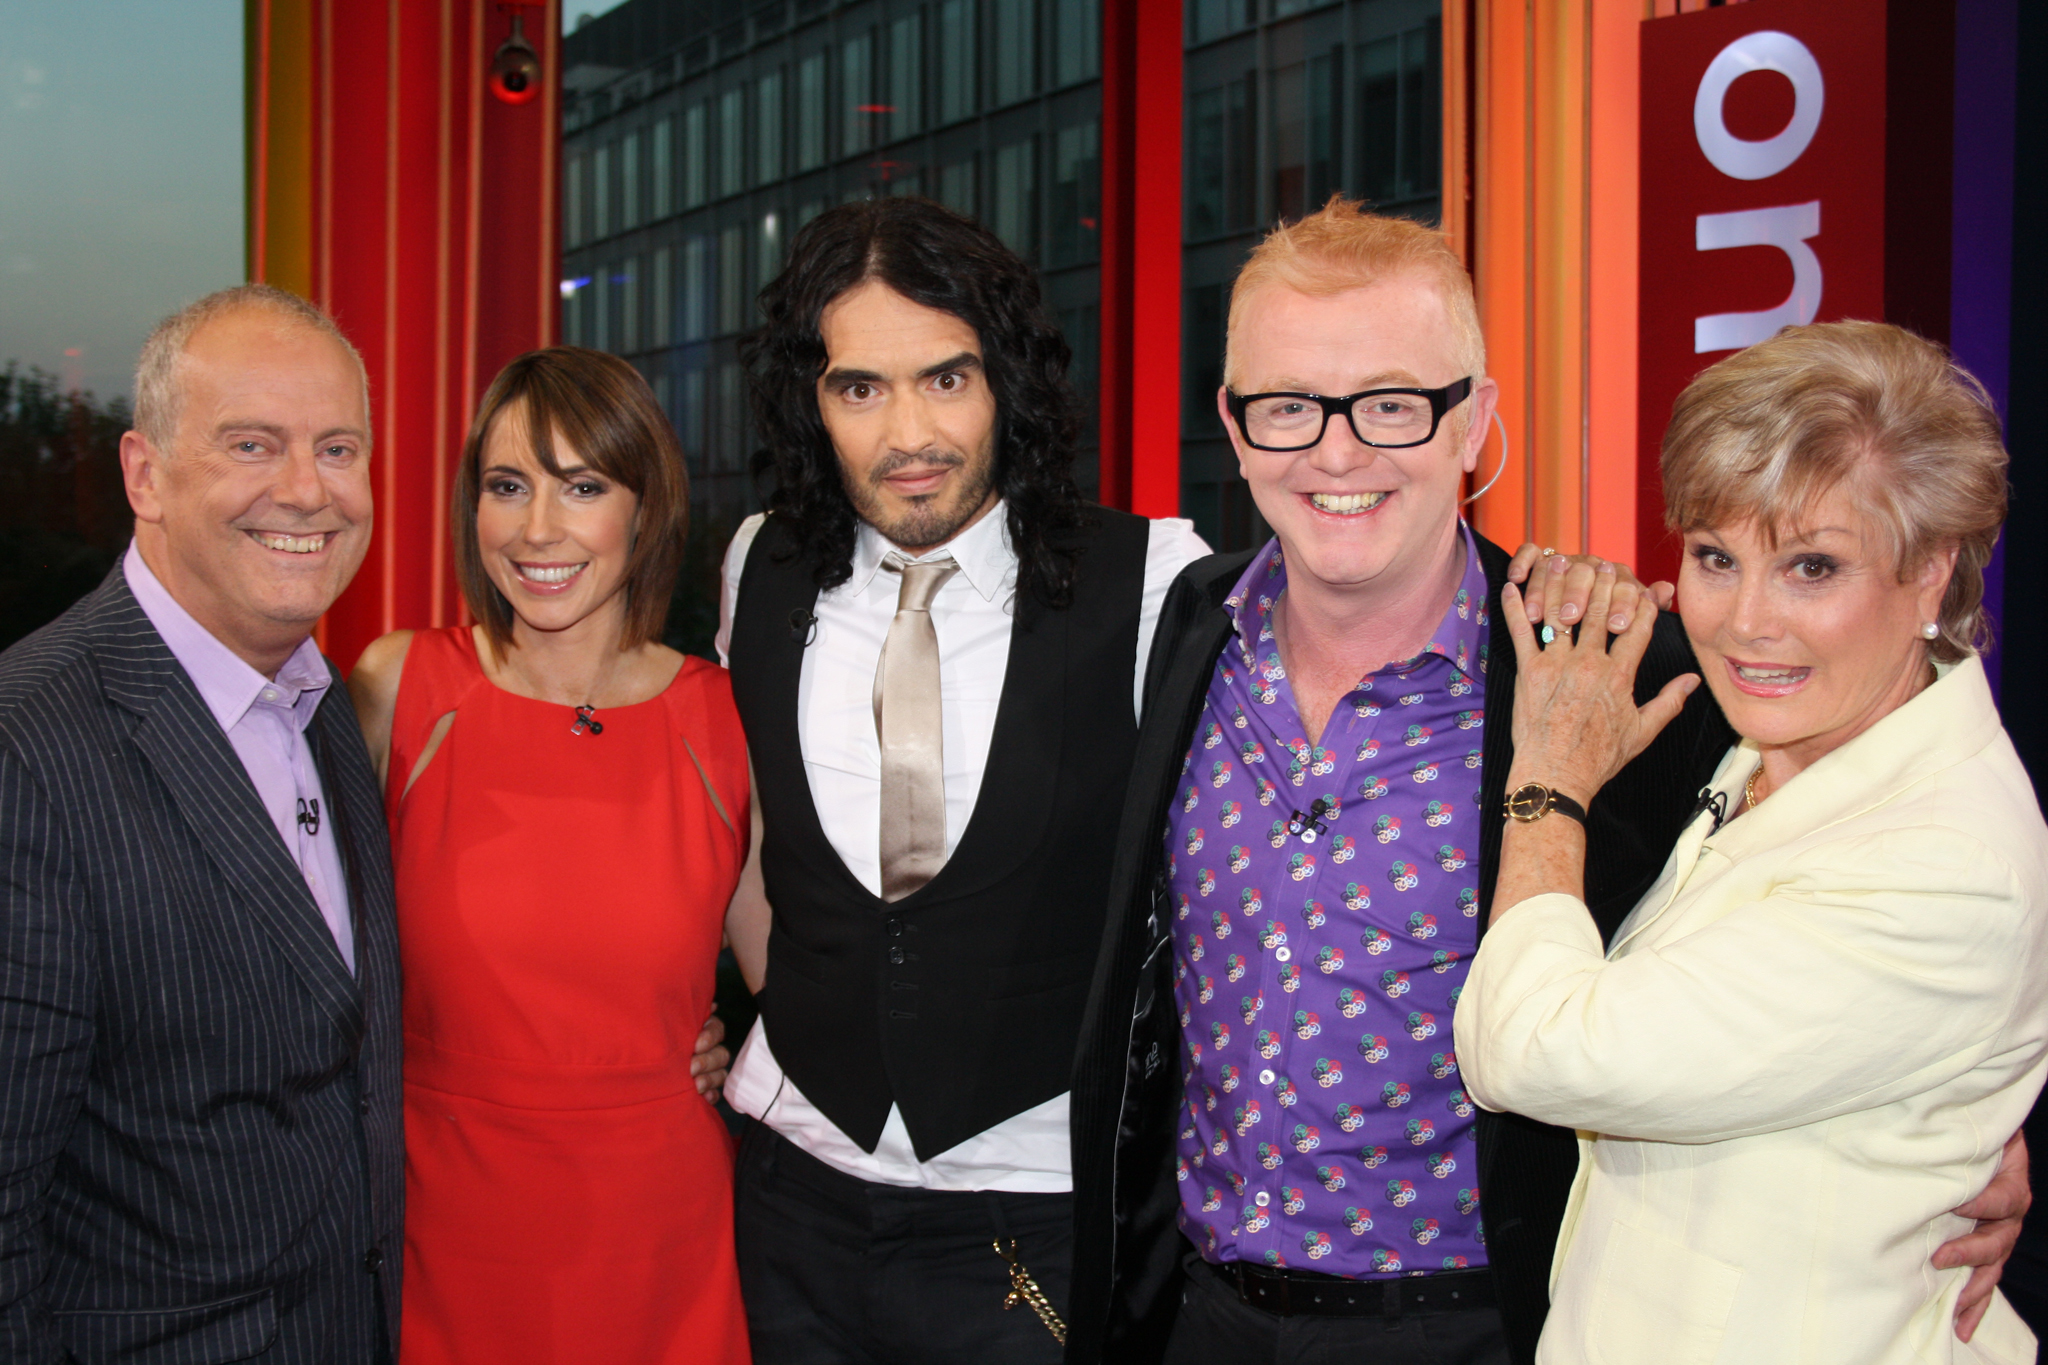 Gyles with Russell Brand, Alex Jones, Chris Evans and Angela Rippon on The One Show, April 2011